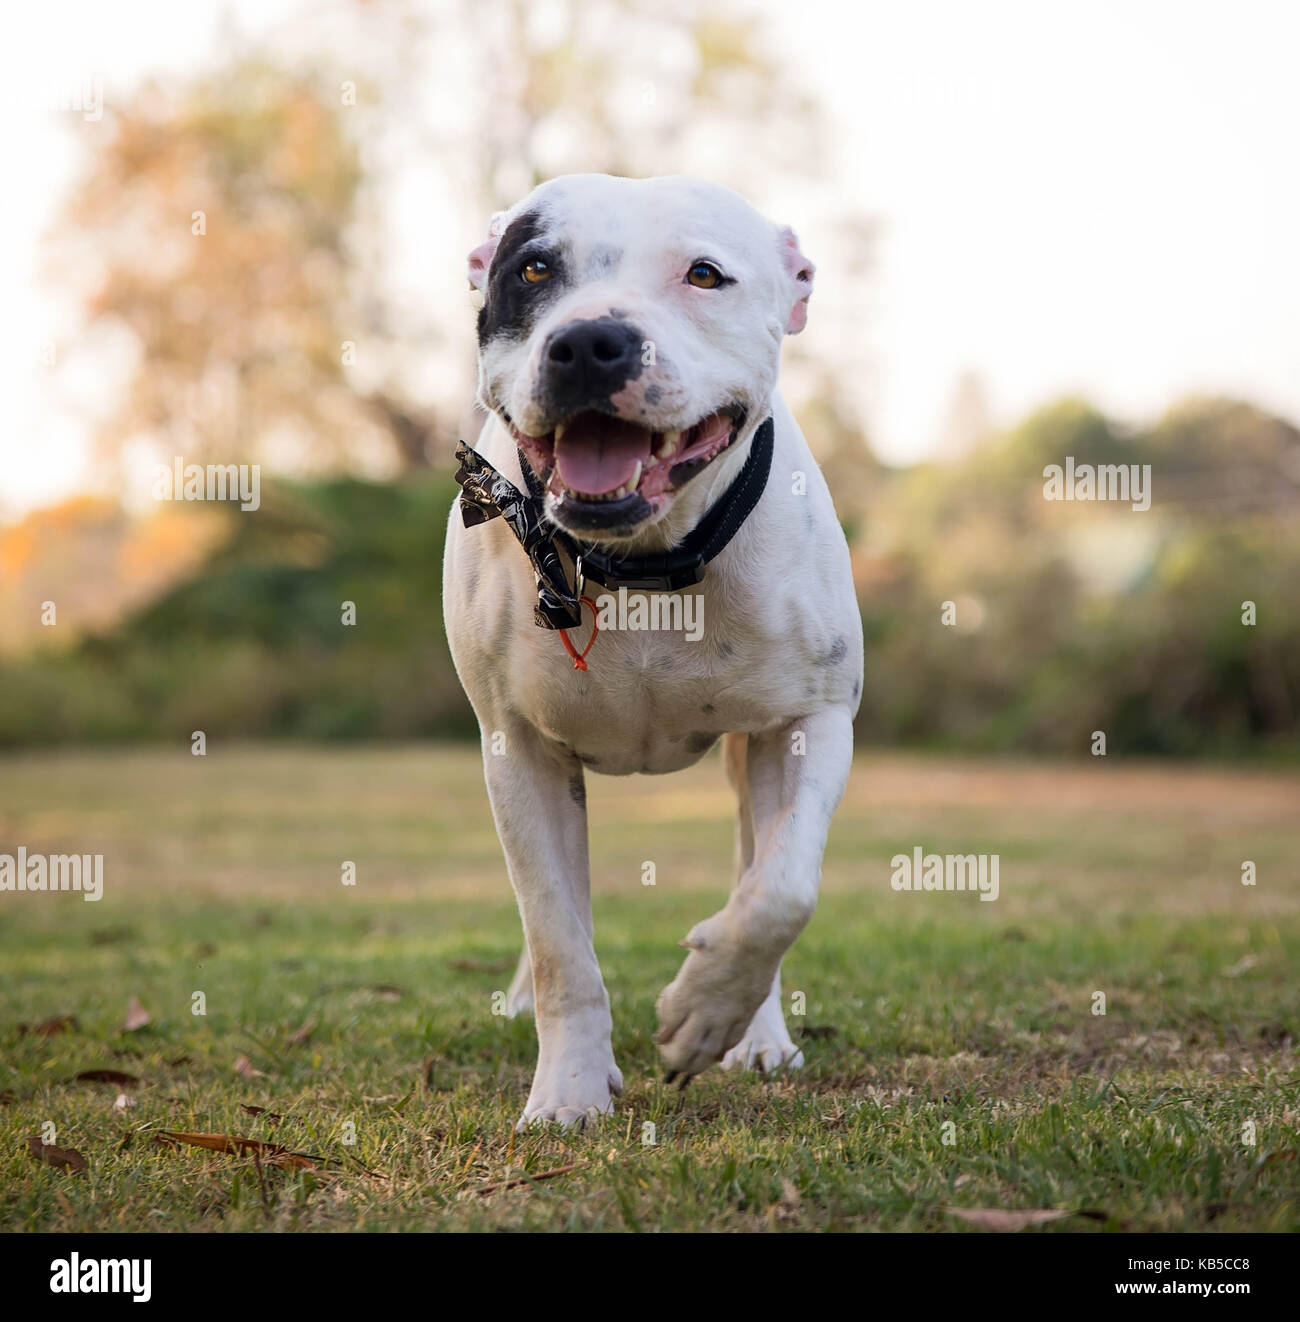 Staffordshire Bull Terrier in outdoor setting - Stock Image